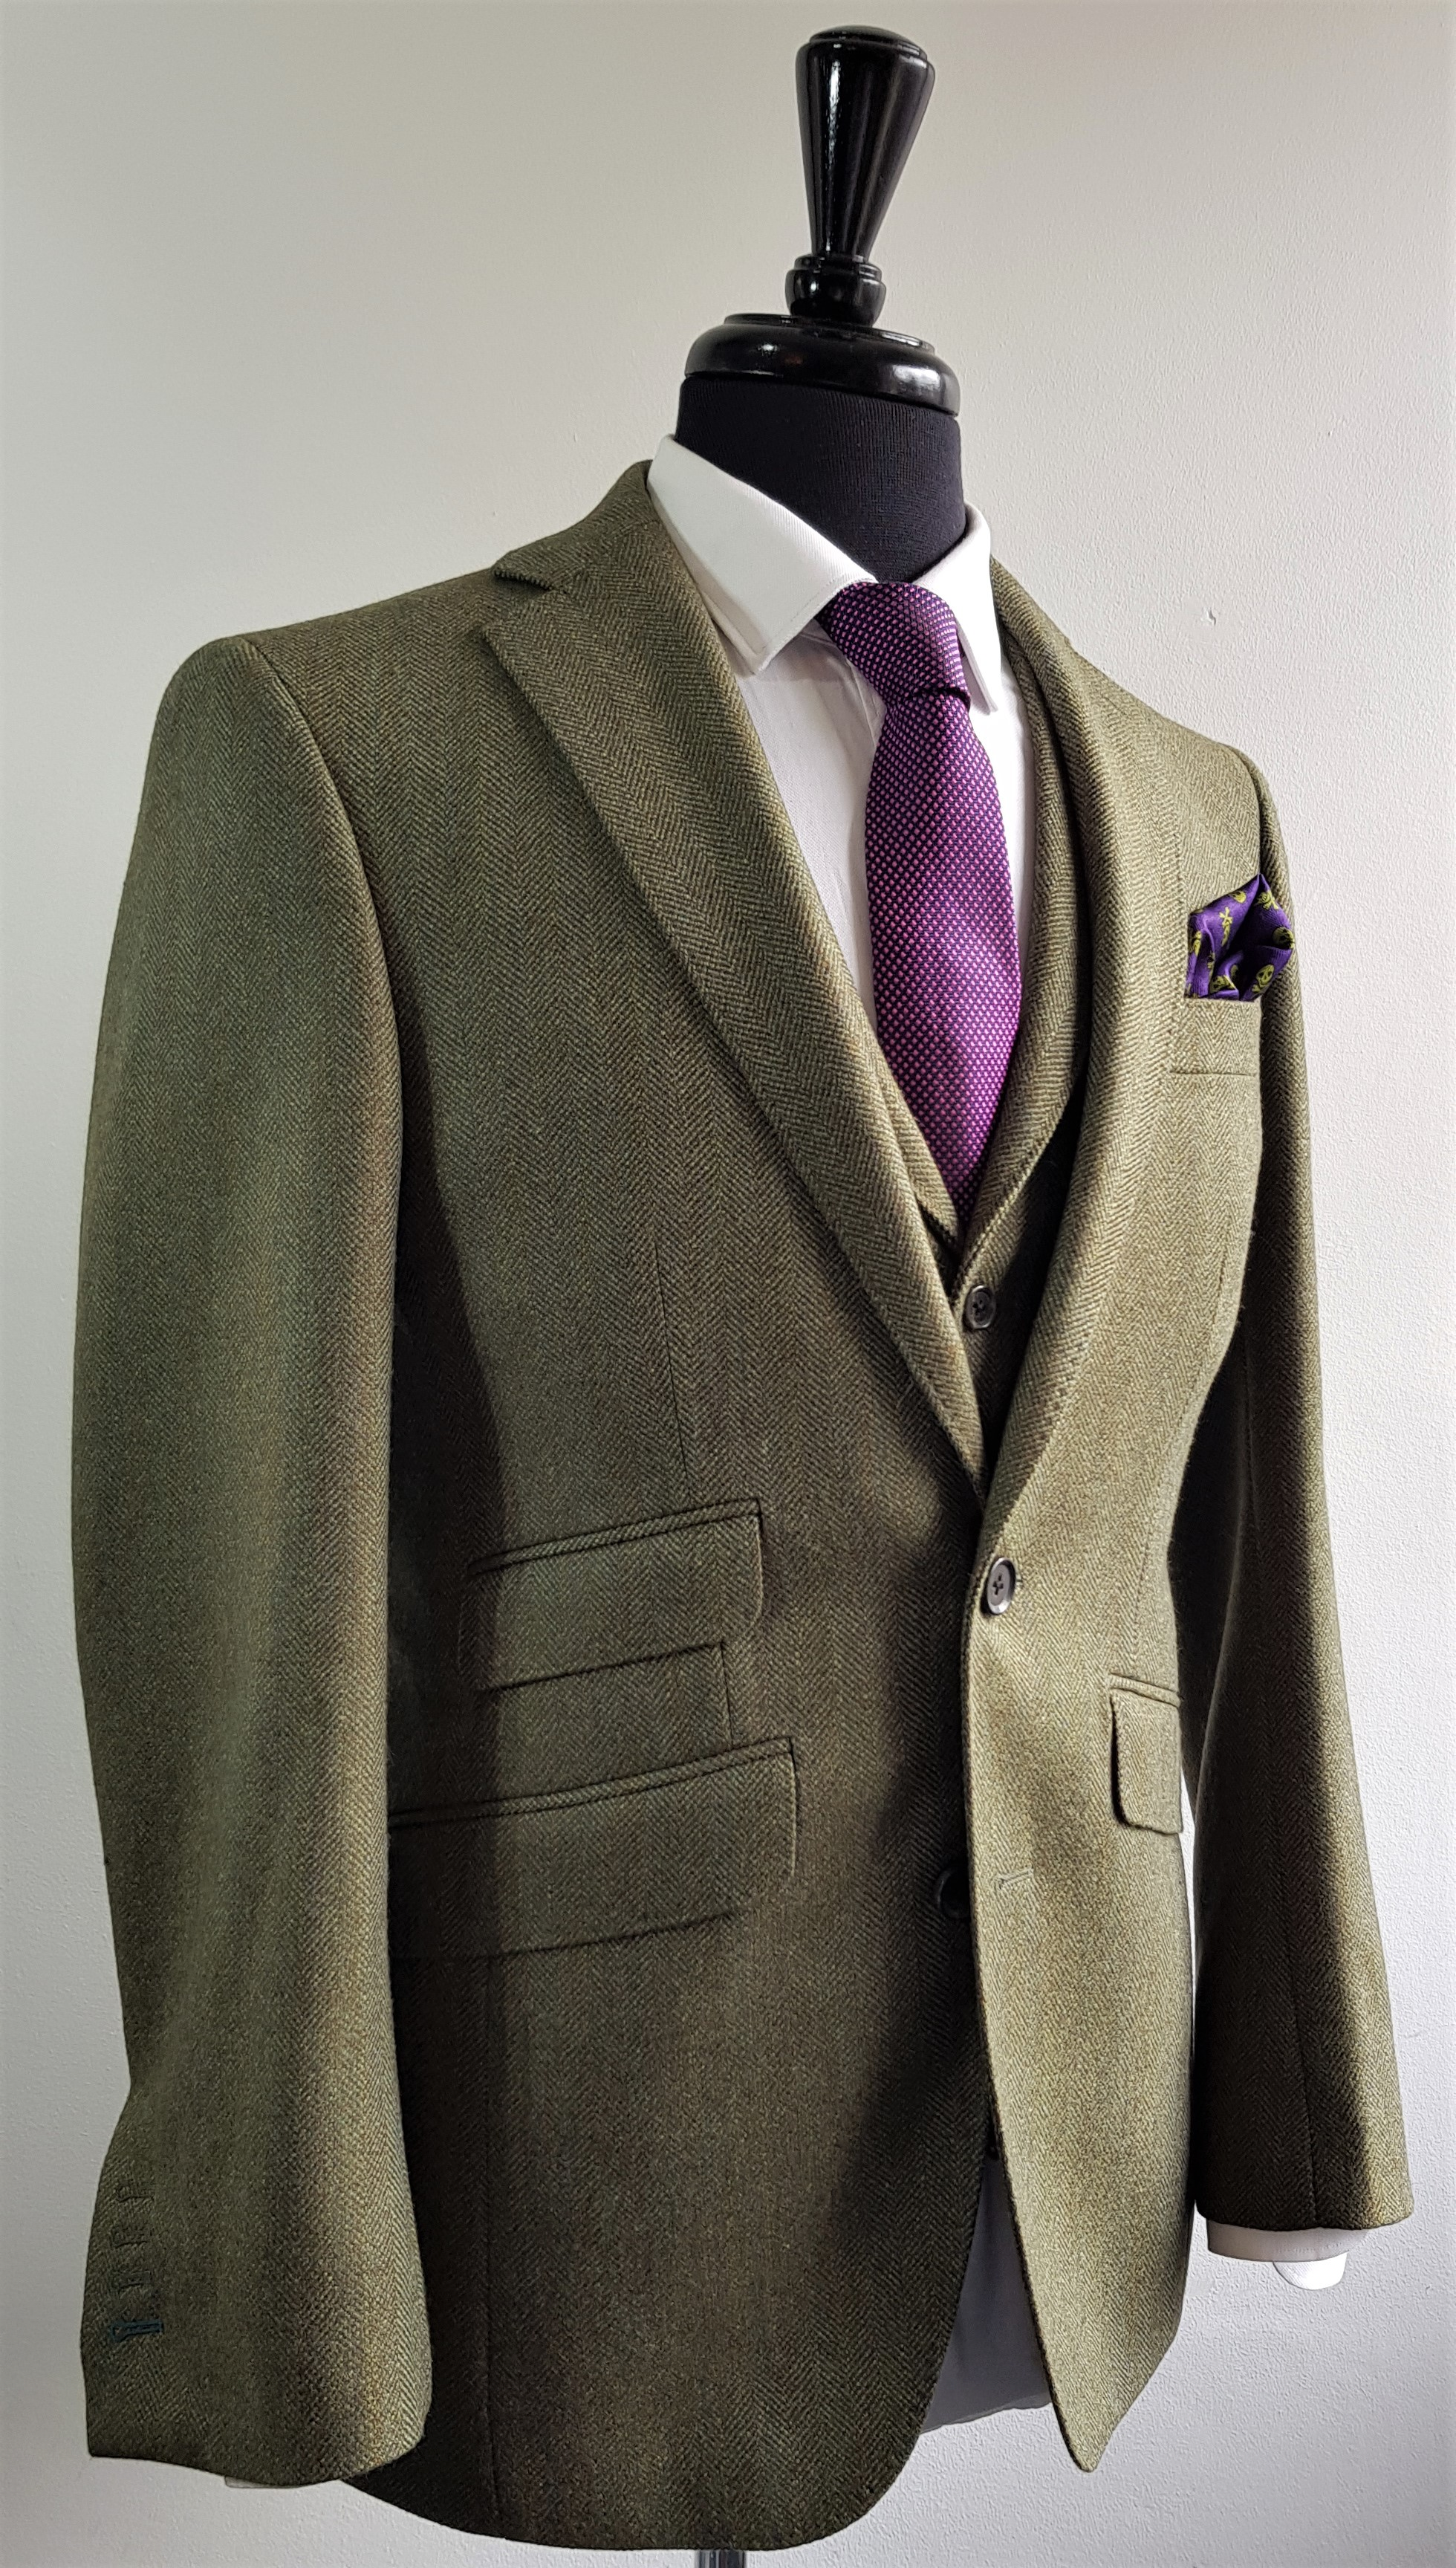 Green herringbone 3 piece tweed suit (10).jpg